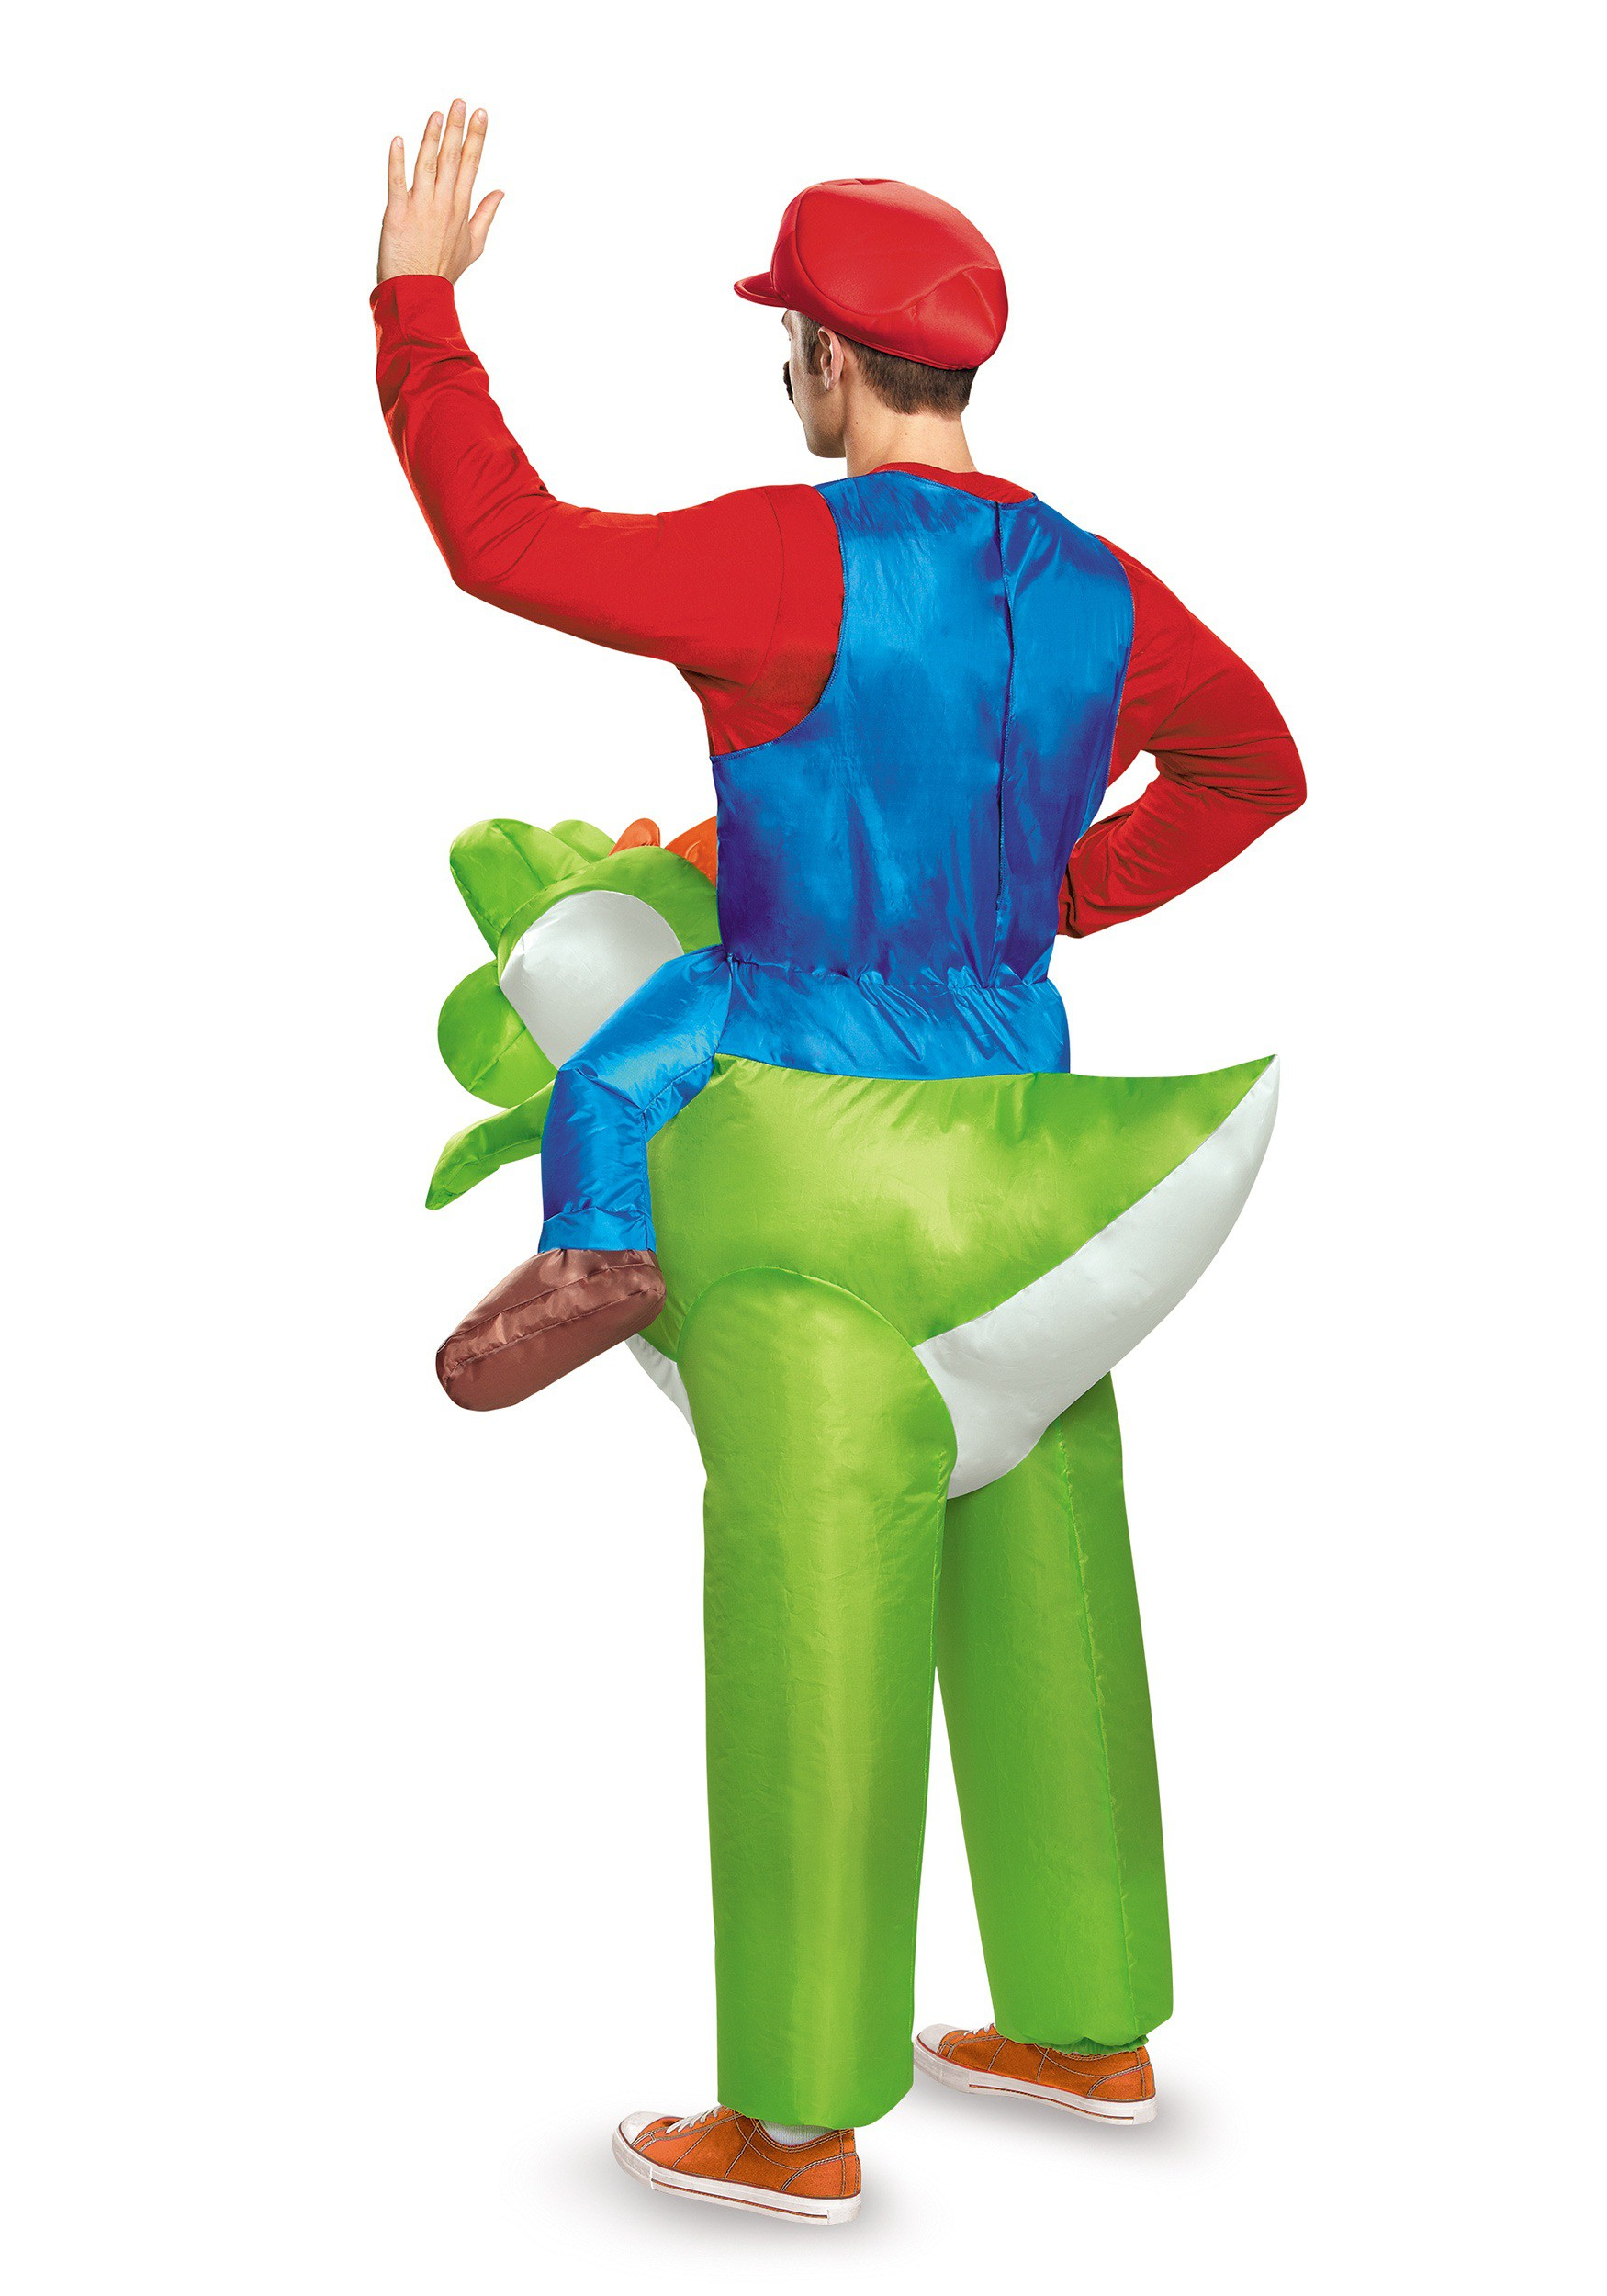 Mario Riding Yoshi Adult Costume Mario Riding Yoshi Adult Costume  sc 1 st  Fun.com & Mario Riding Yoshi Costume for Adults